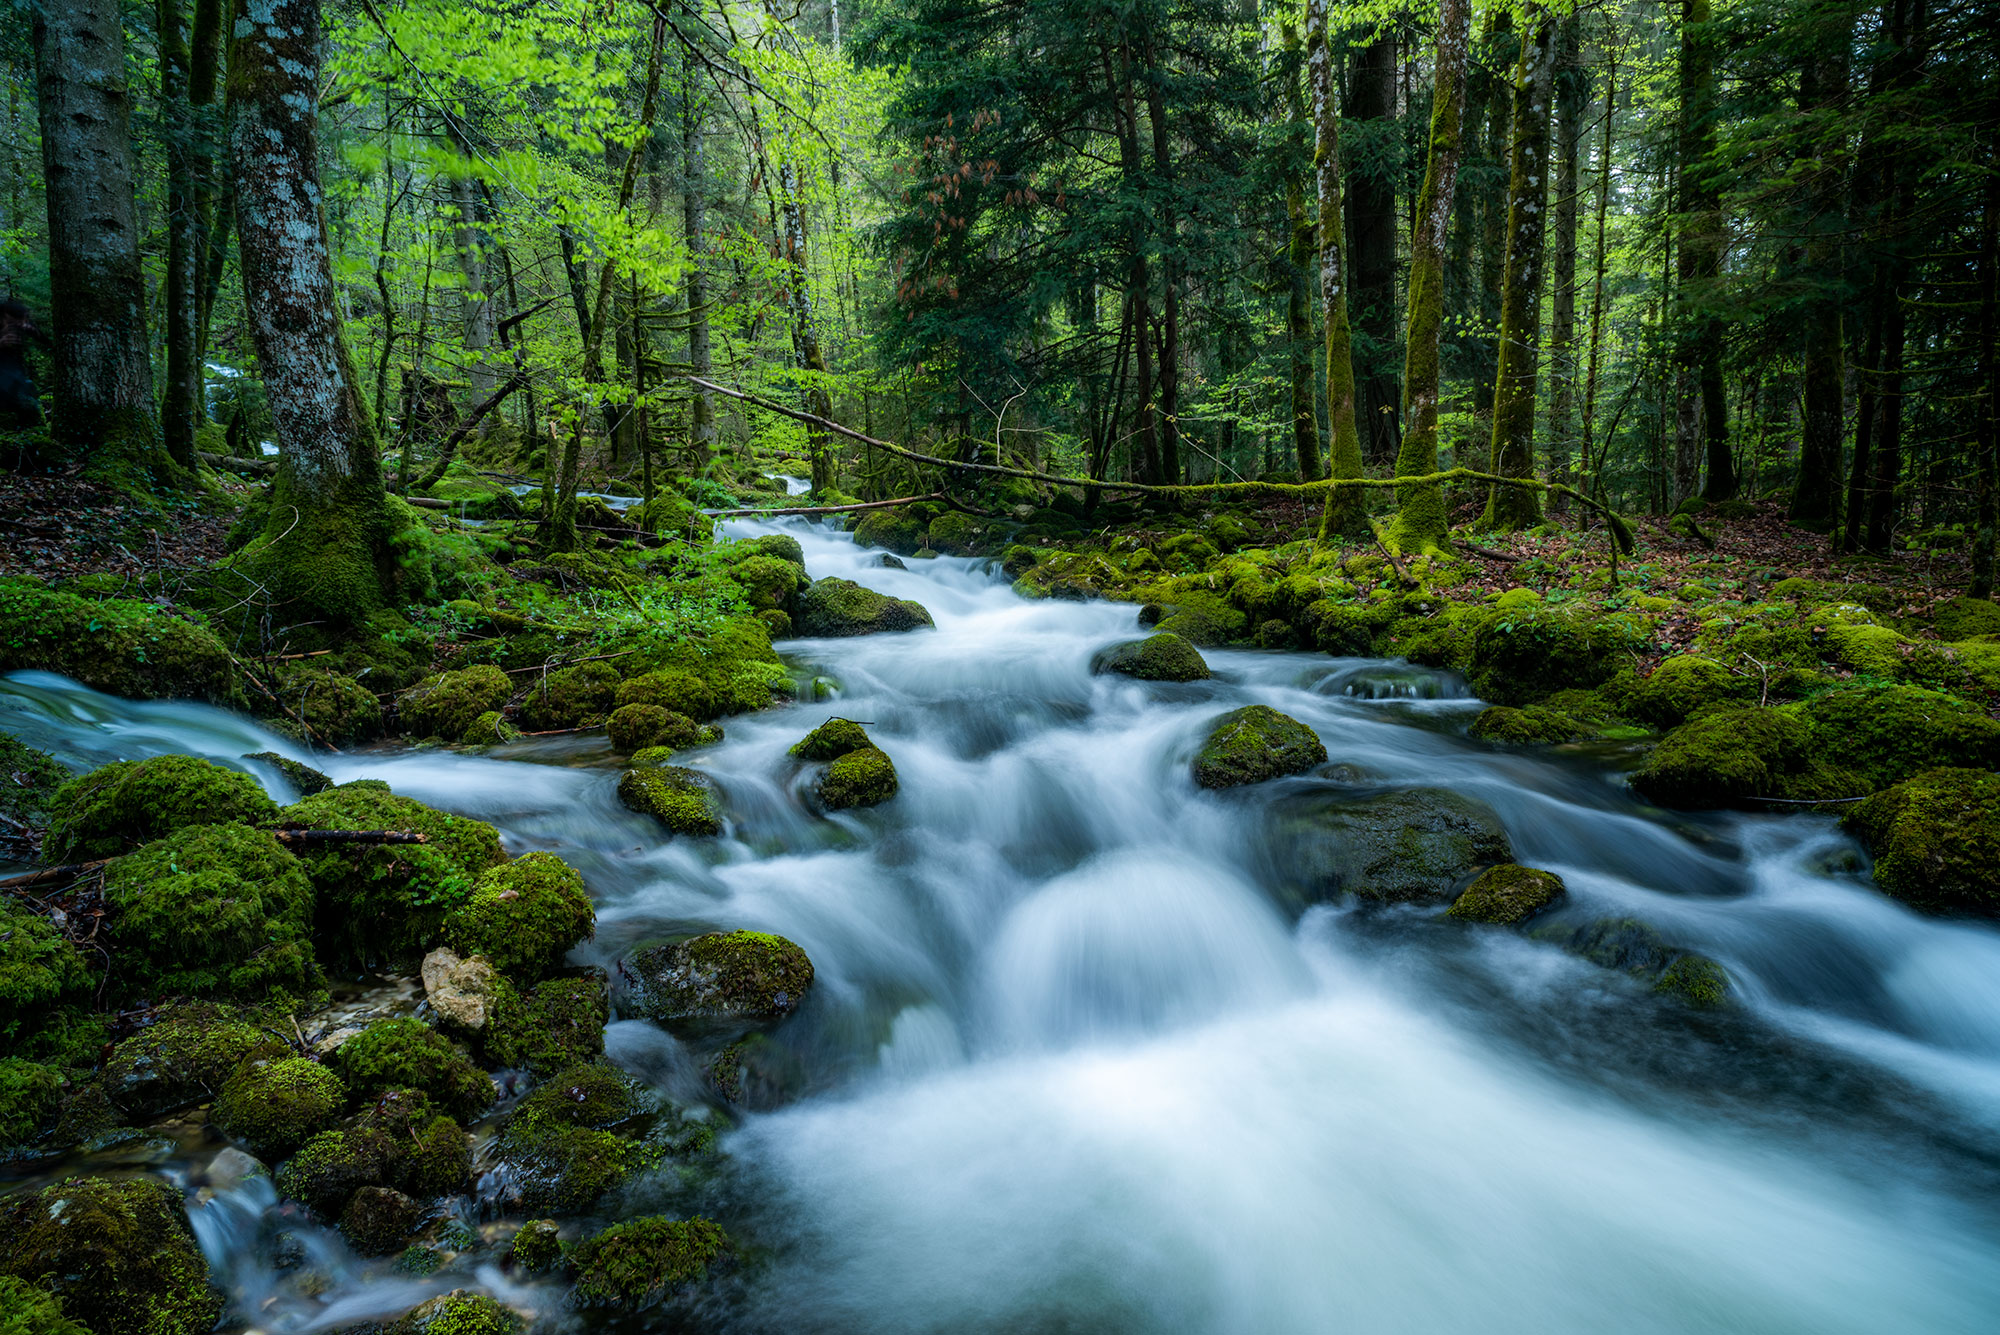 Forest and river landscape photography, in Switzerland. Image by Jennifer Esseiva.